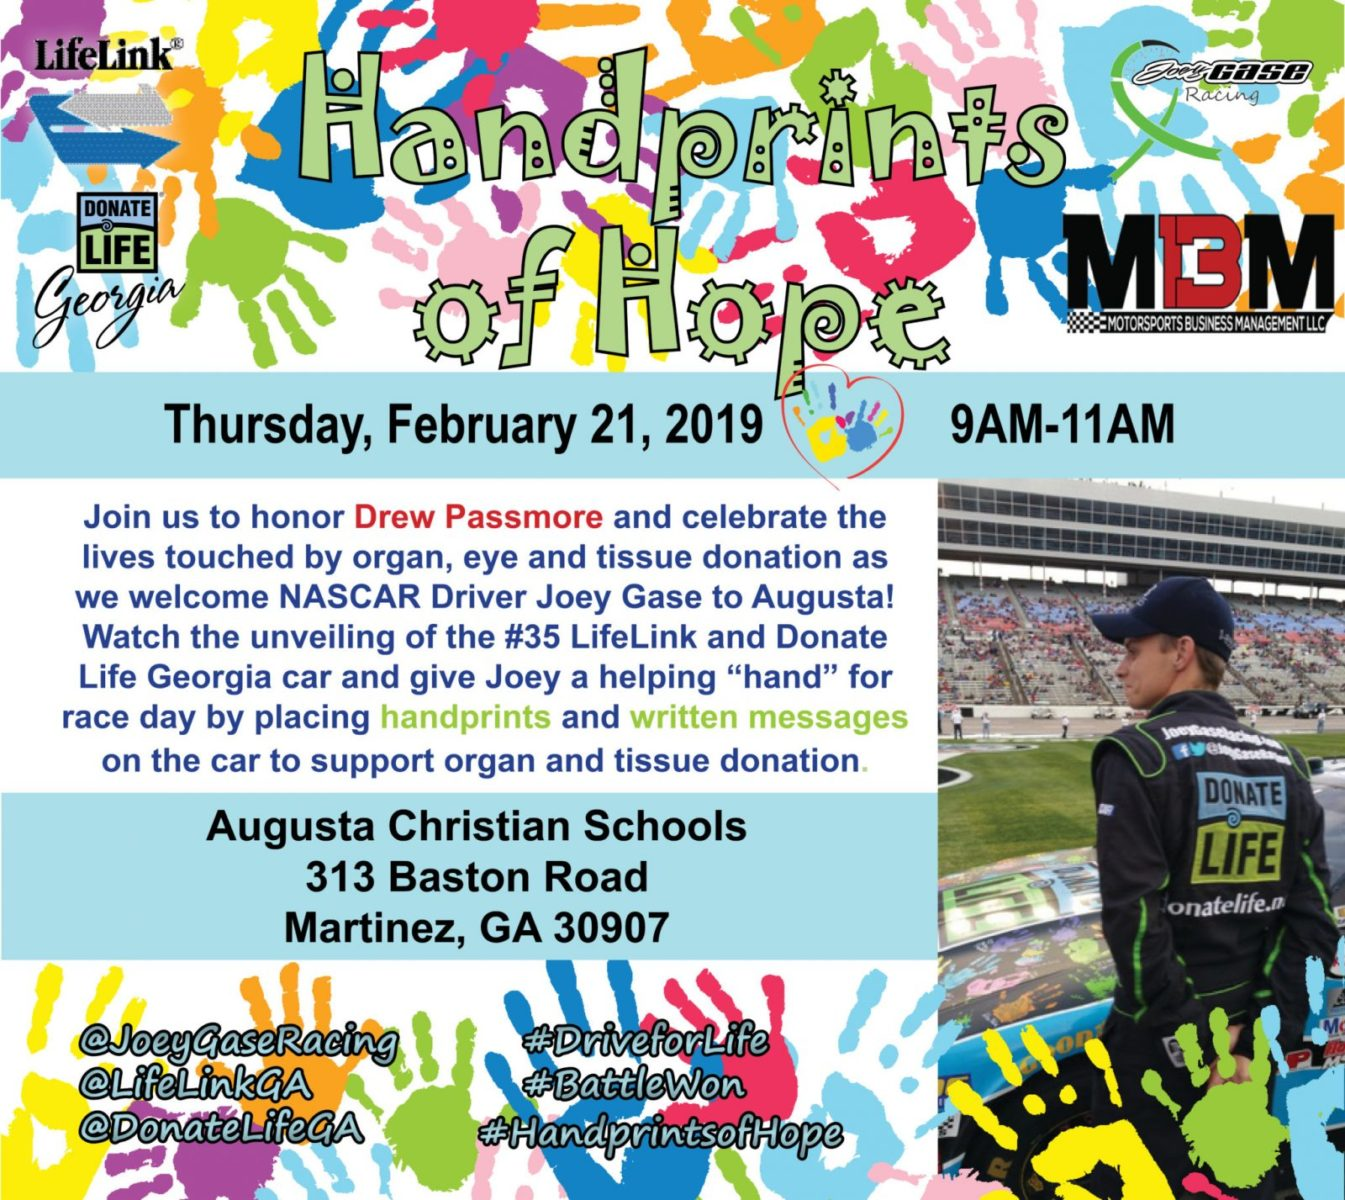 AUGUSTA, GA (February 1, 2019) – Following his mother's death in 2011 of a sudden brain aneurysm, NASCAR driver Joey Gase made the decision to donate her ...